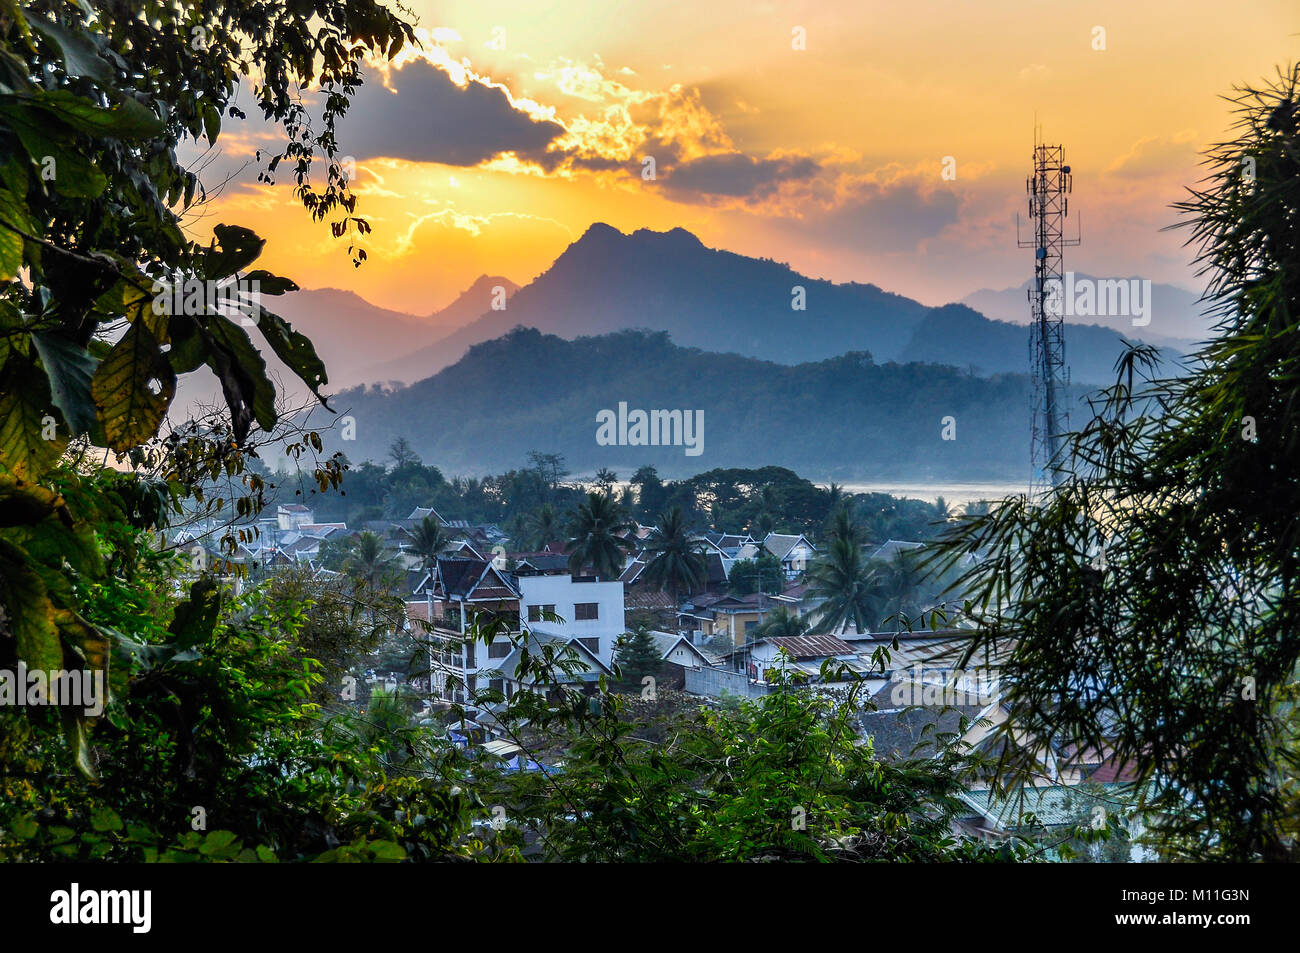 Sunset over UNESCO World Heritage Luang Prabang, Laos - Stock Image